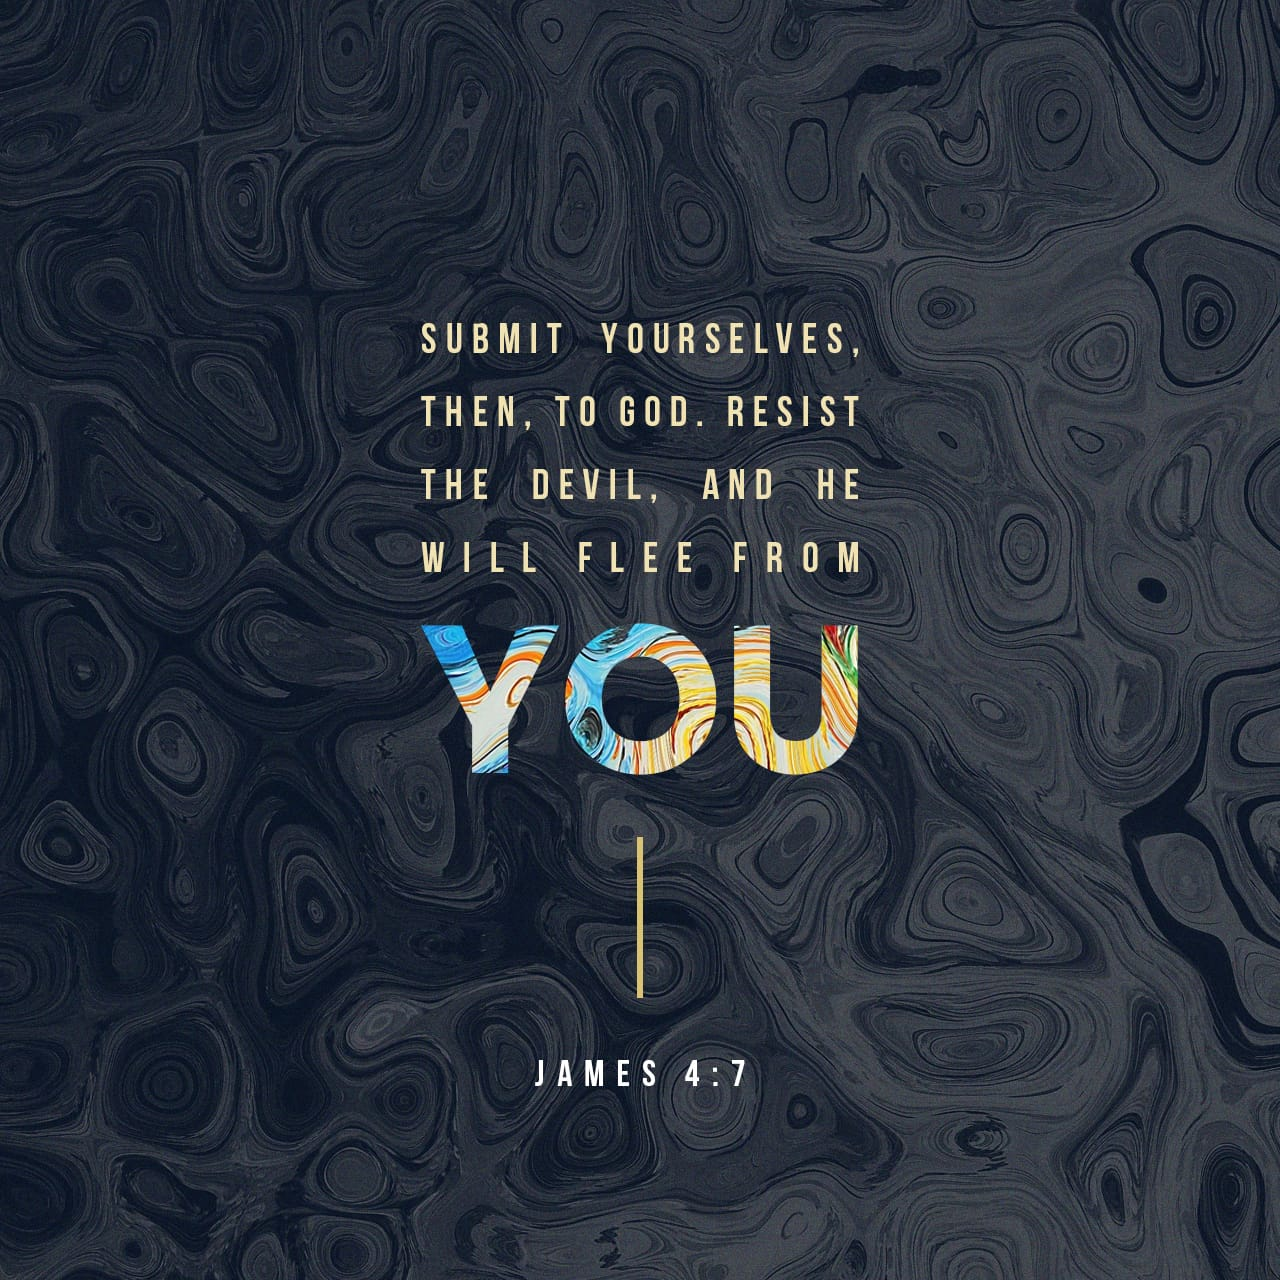 James 4:7 Submit yourselves therefore to God  Resist the